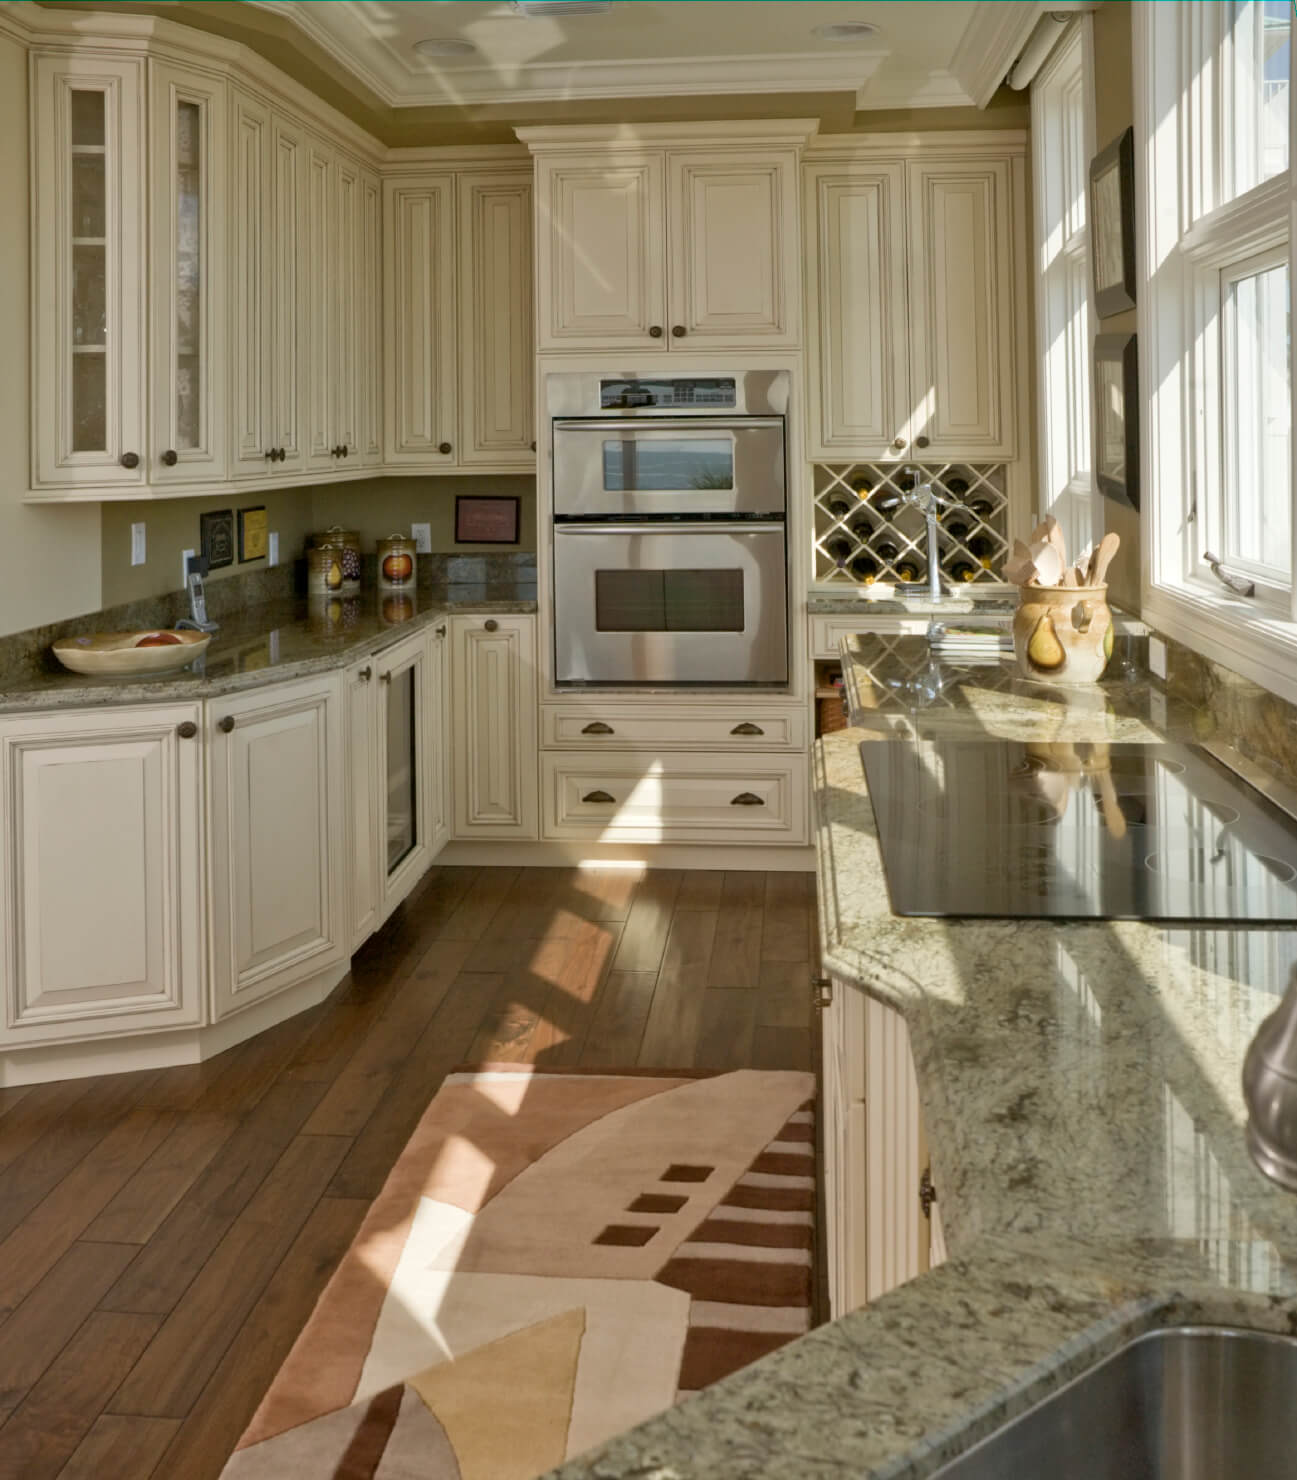 white kitchen designs pictures cheap white kitchen cabinets Treated white cabinets add to the old fashioned look in this compact kitchen featuring geometric rug